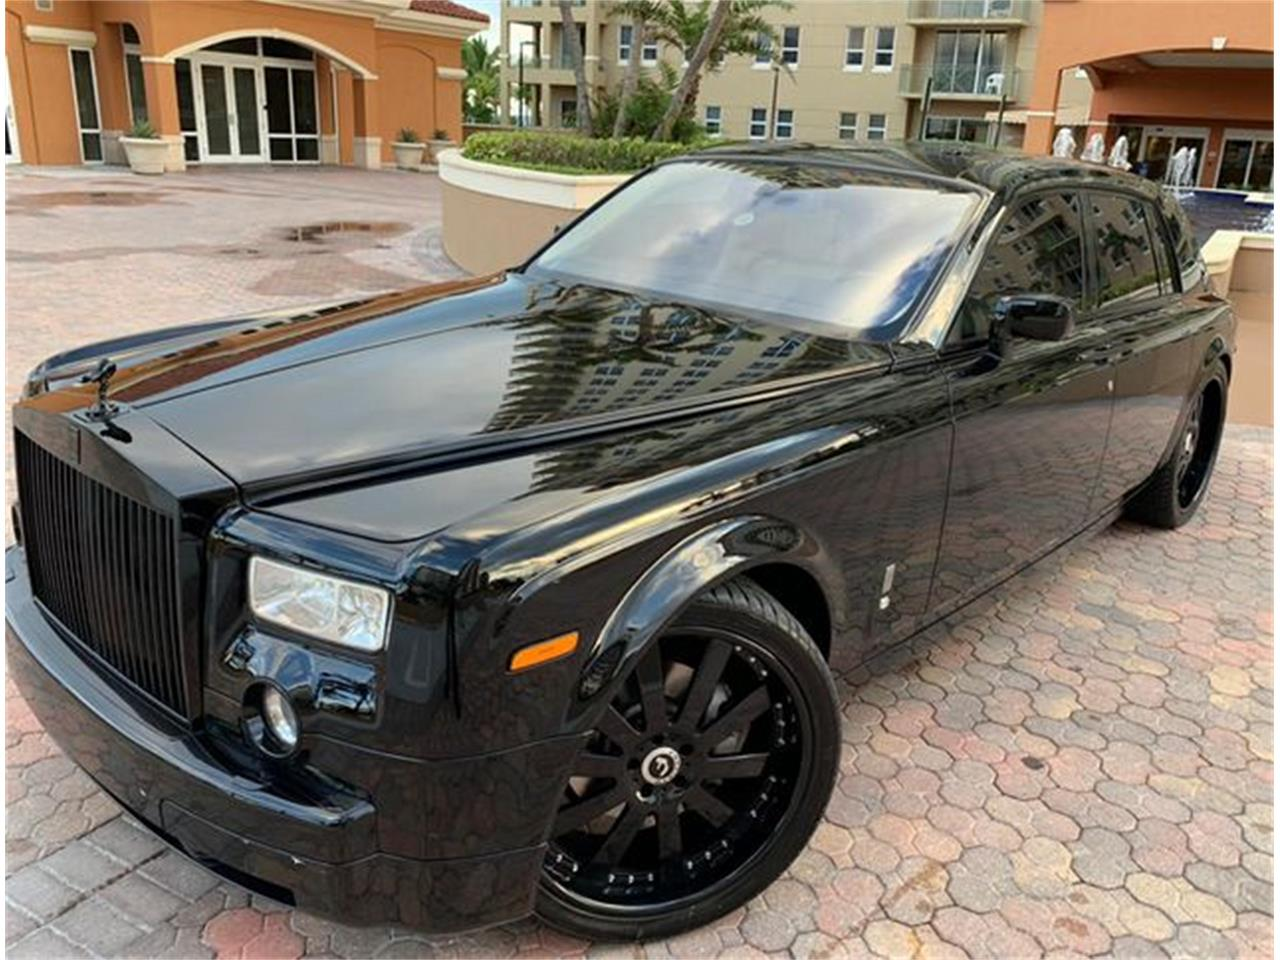 2006 Rolls-Royce Phantom for sale in Valley Park, MO – photo 74